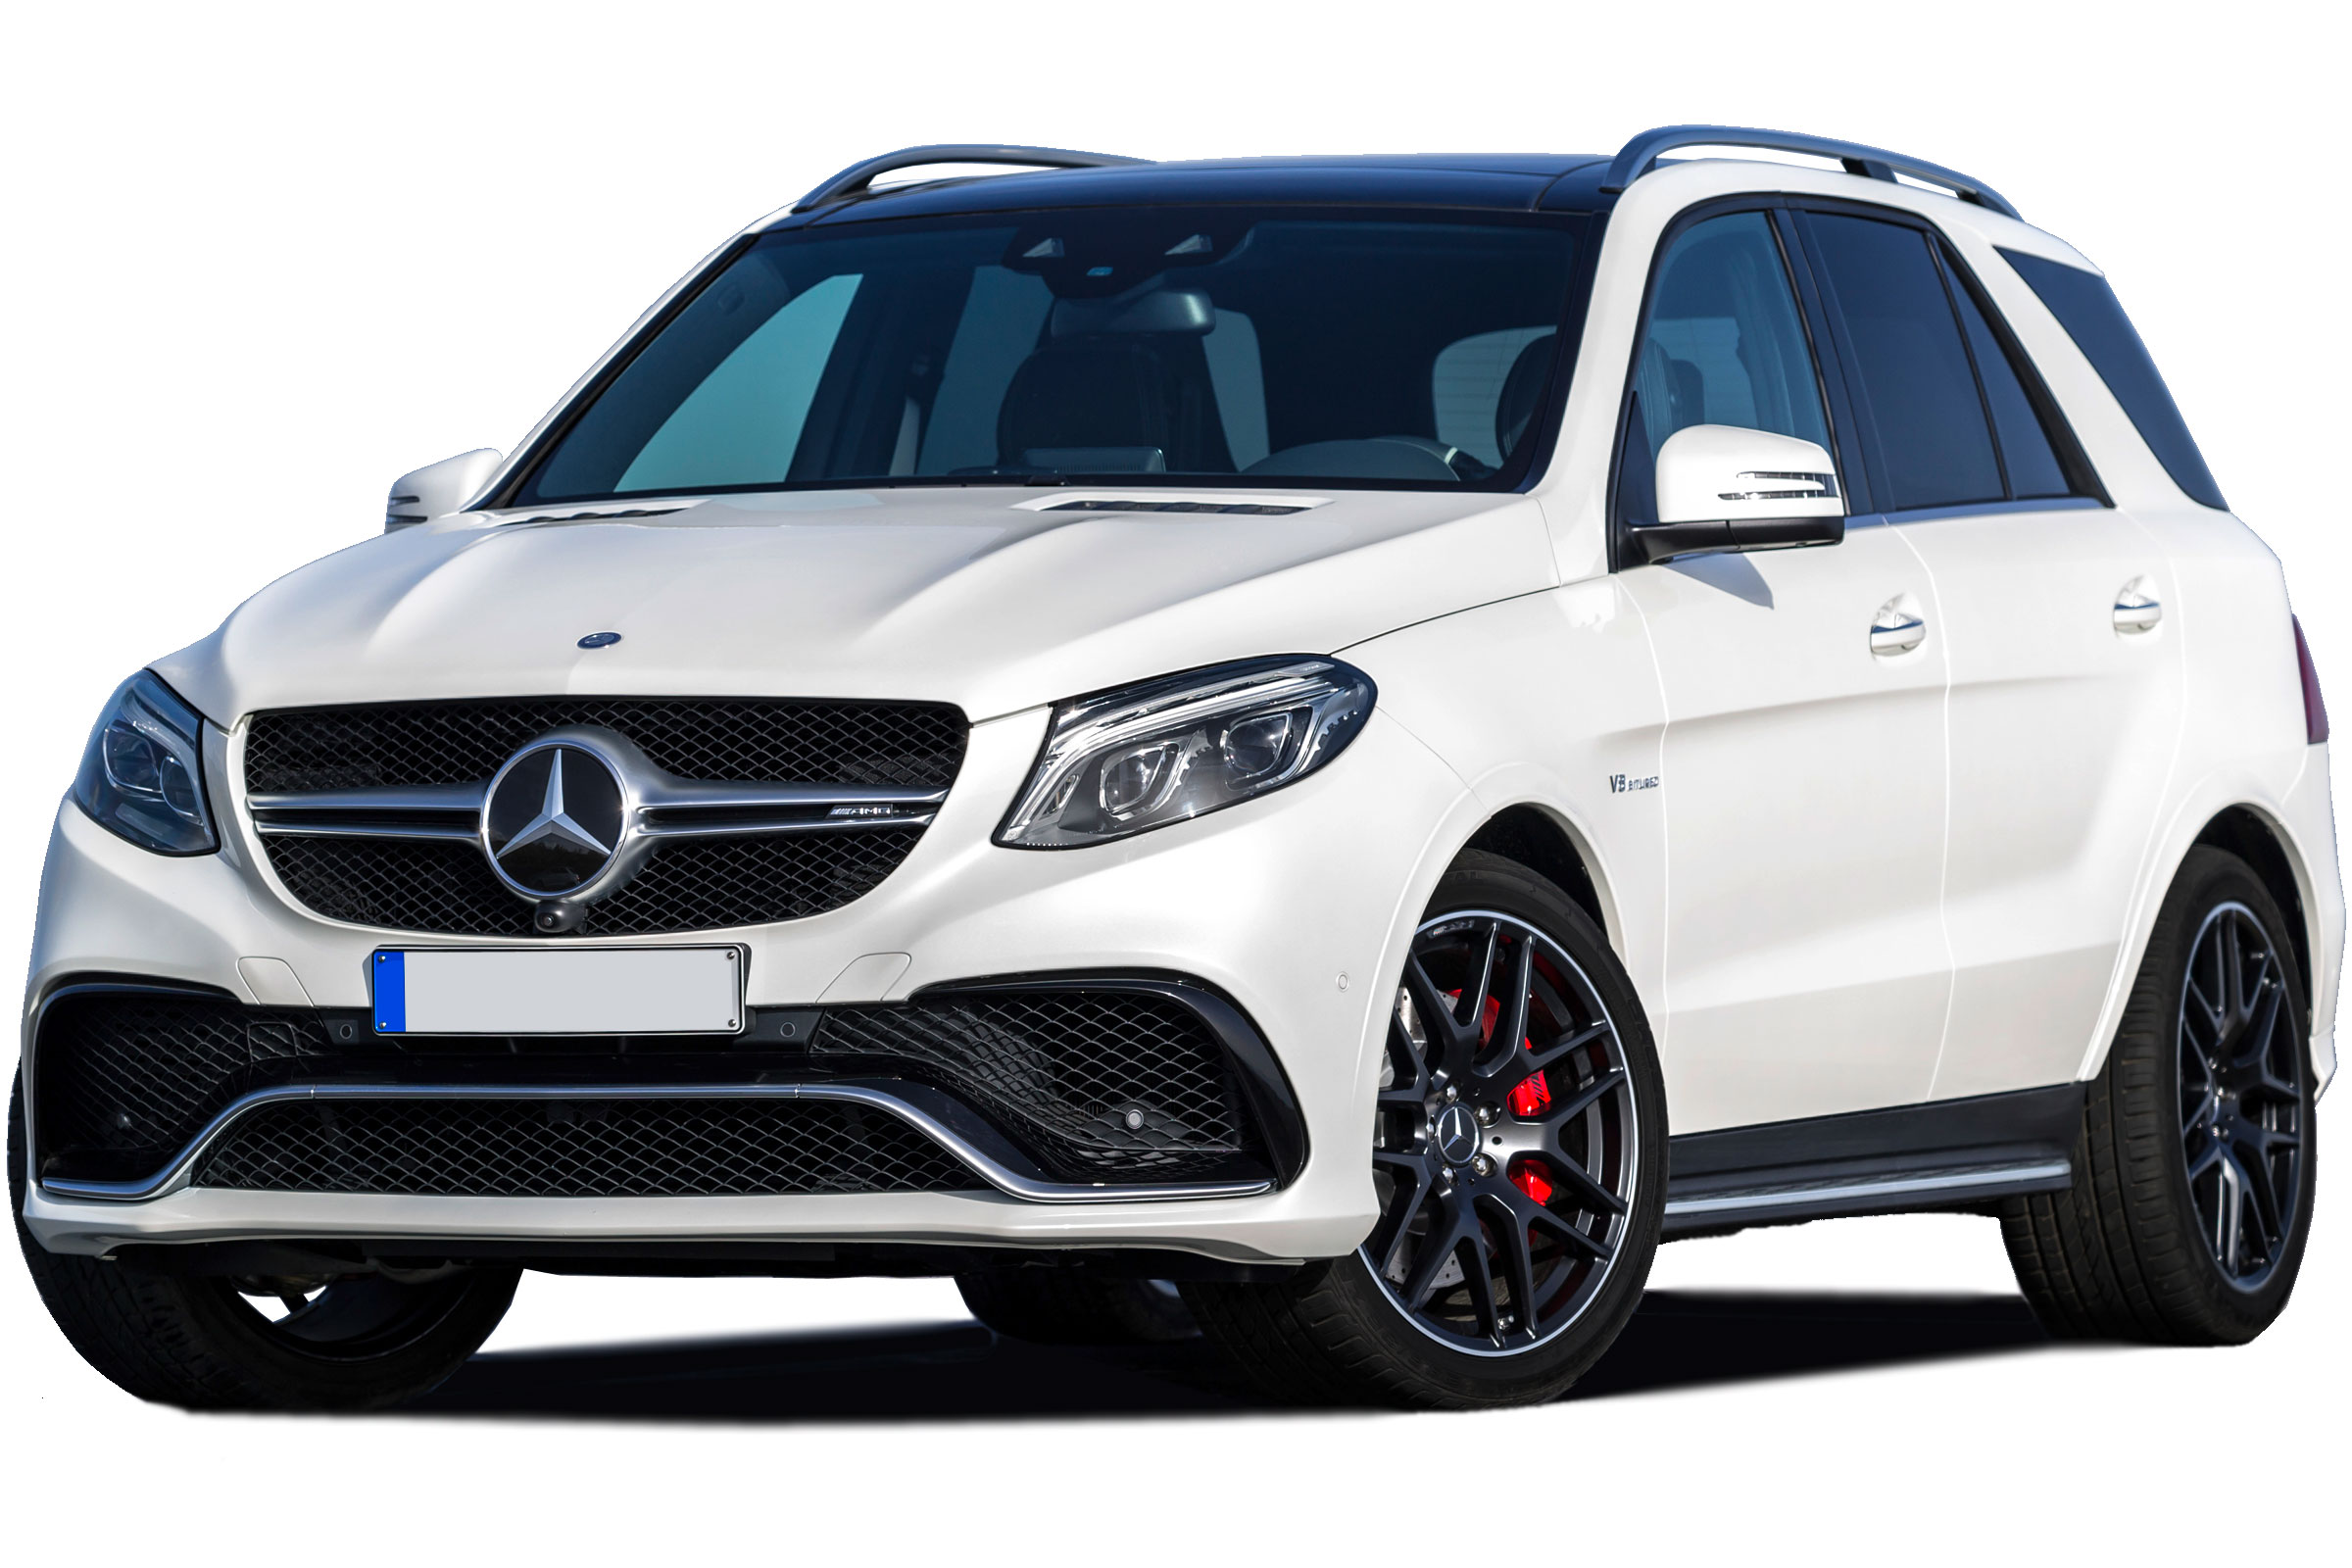 Mercedes Amg Gle 63 Suv 2020 Review Carbuyer